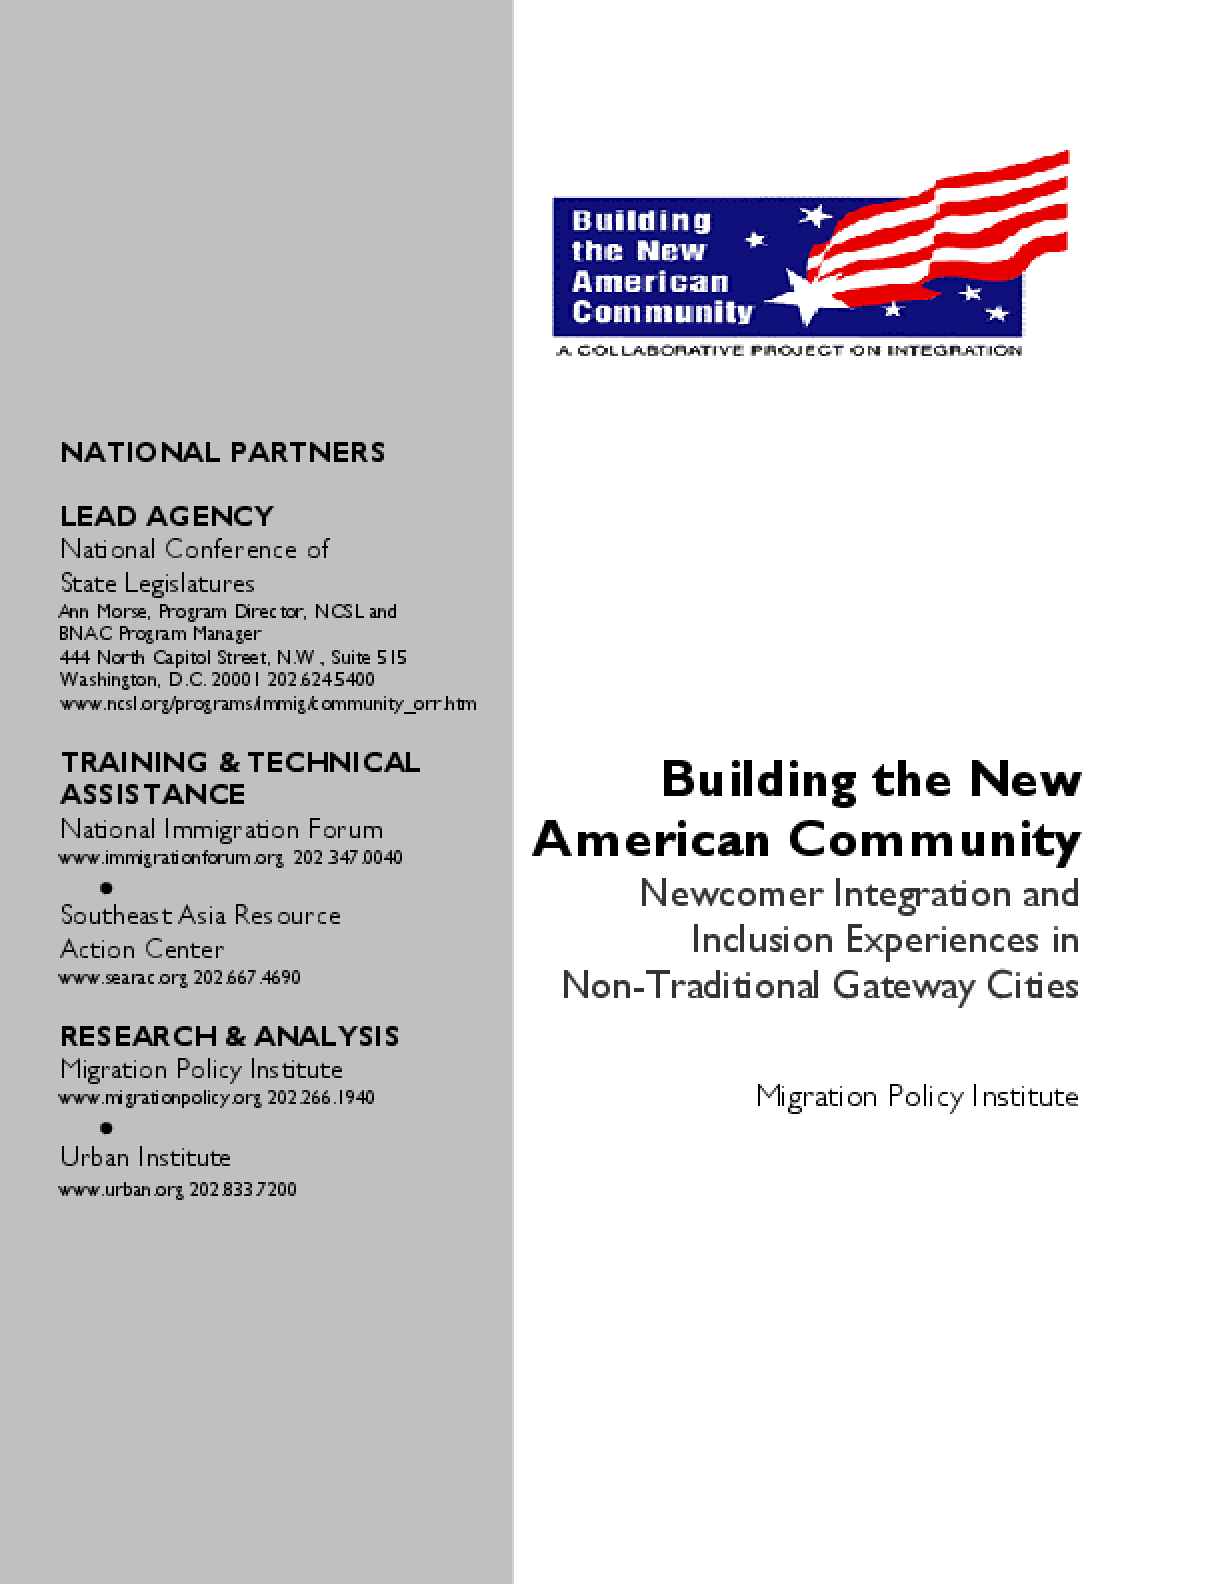 Building the New American Community Initiative: Newcomer Integration and Inclusion Experiences in Non-Traditional Gateway Cities